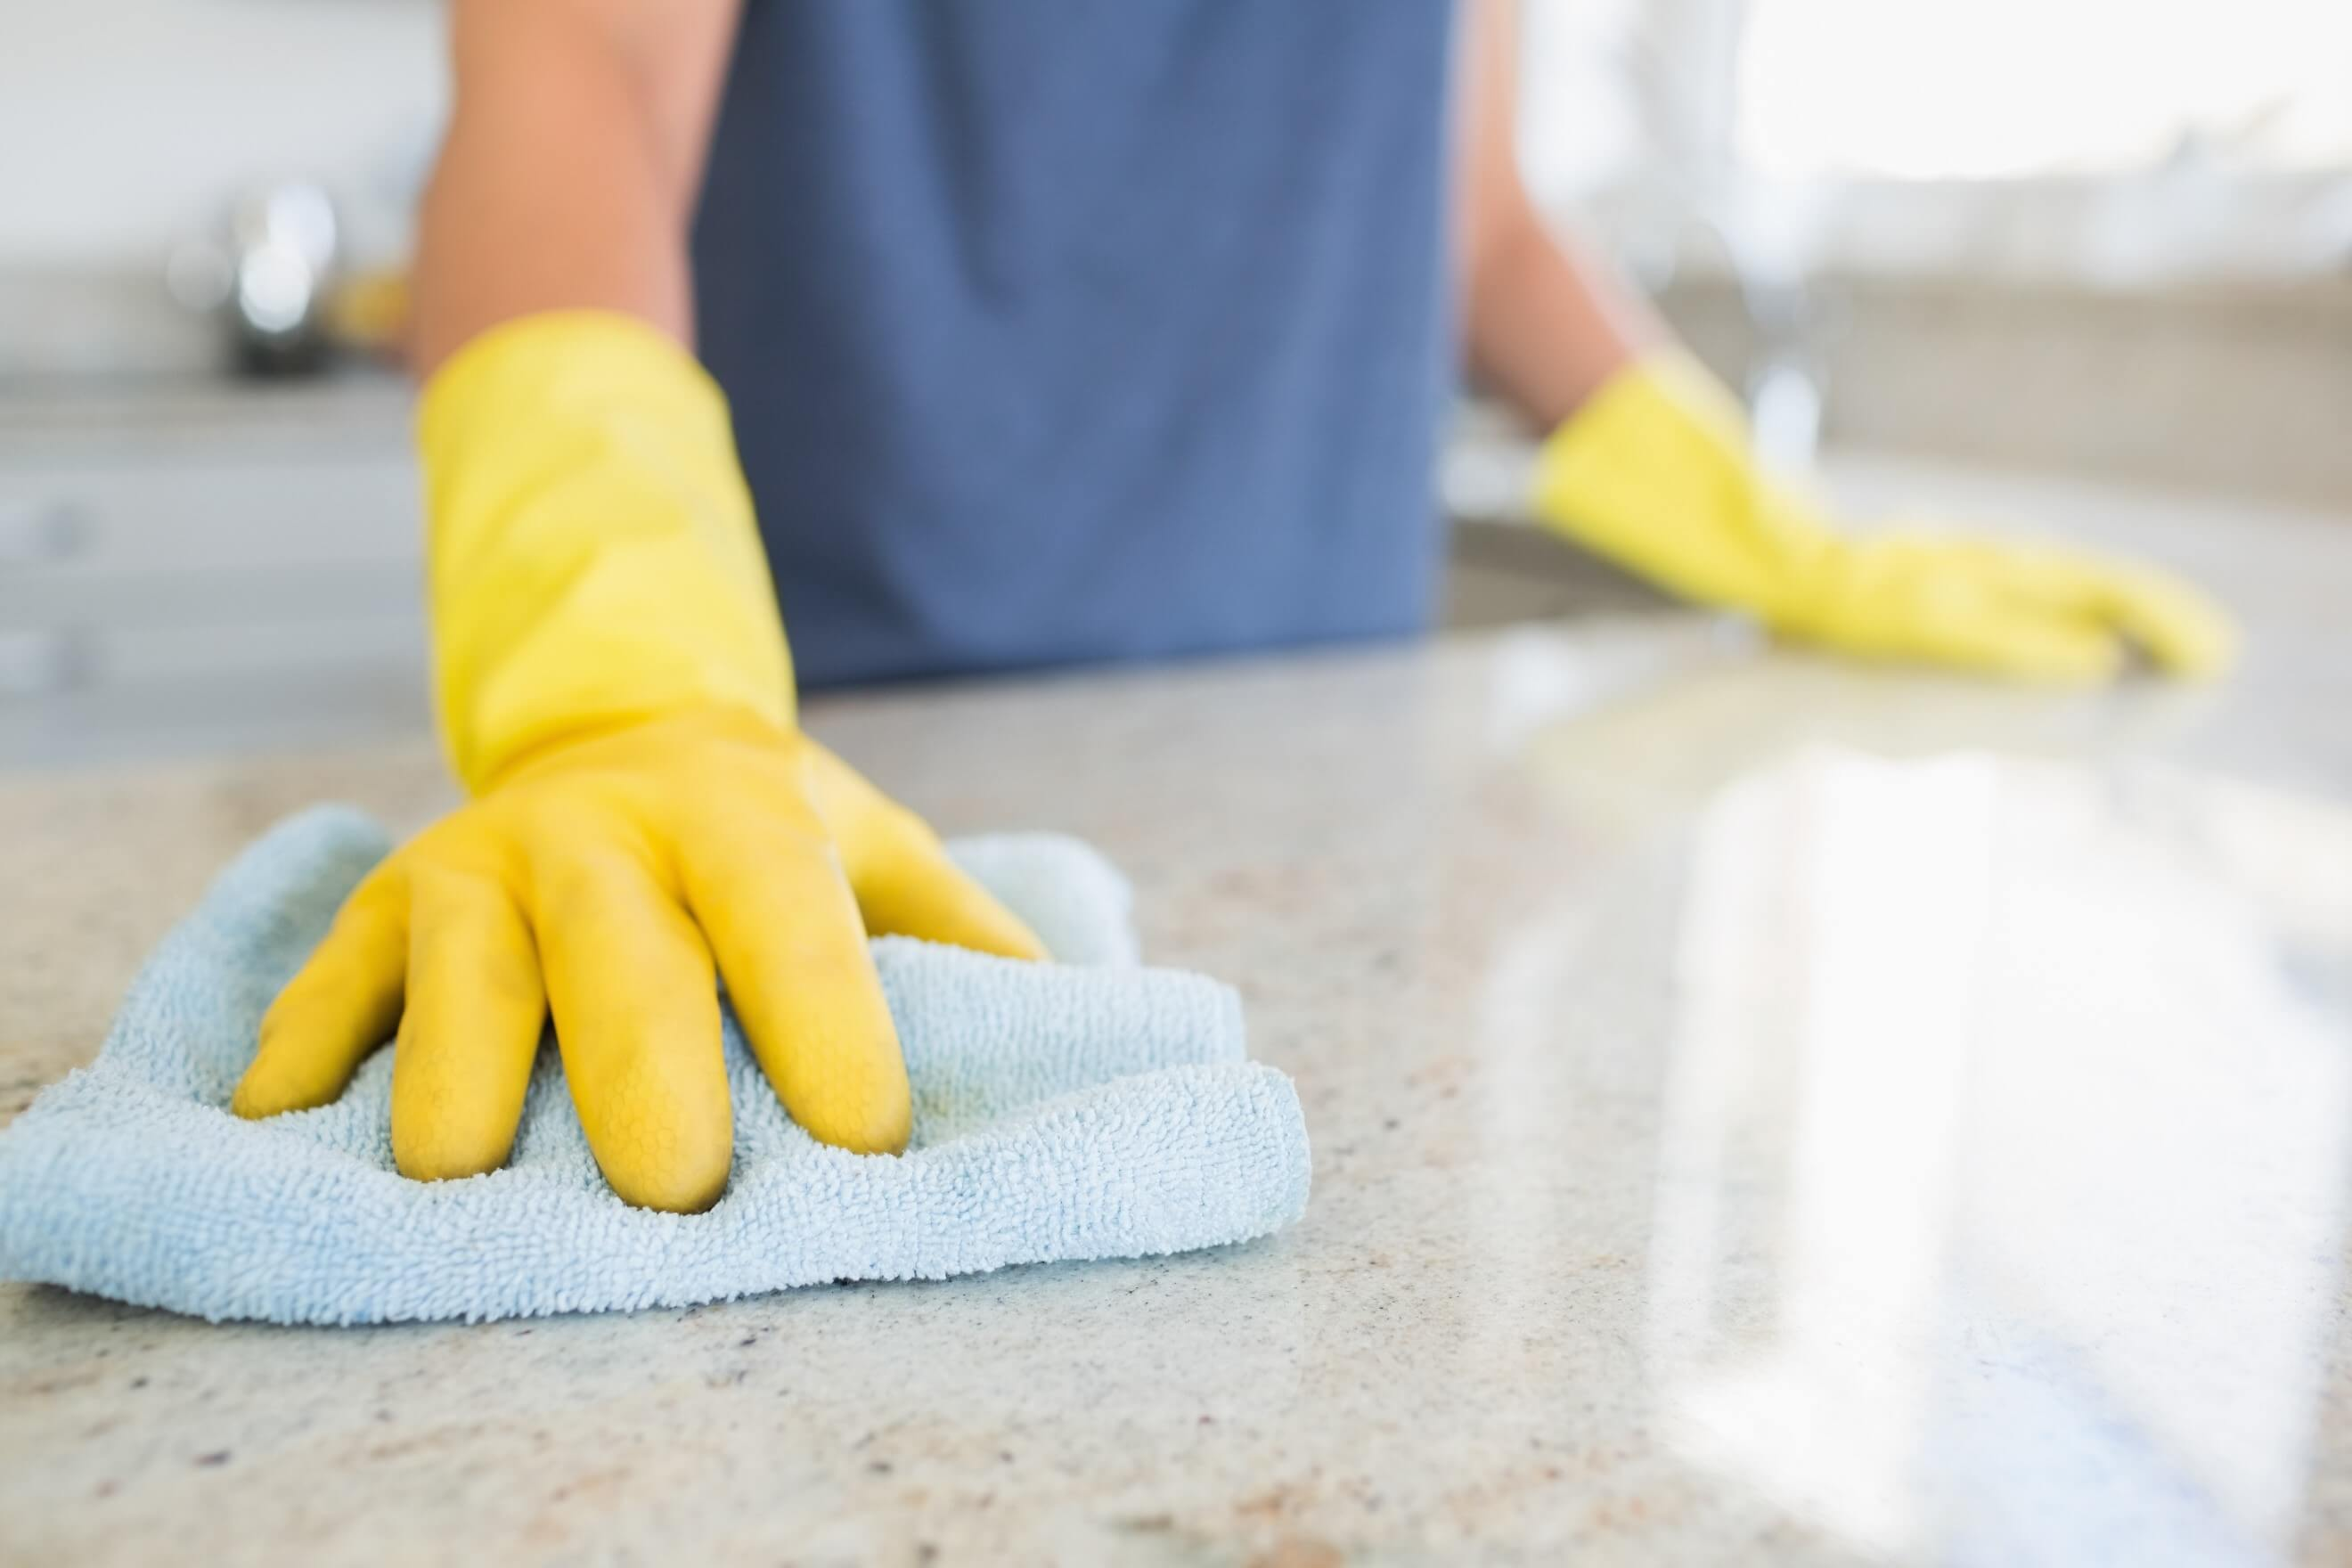 hands in rubber gloves cleaning stone worktop